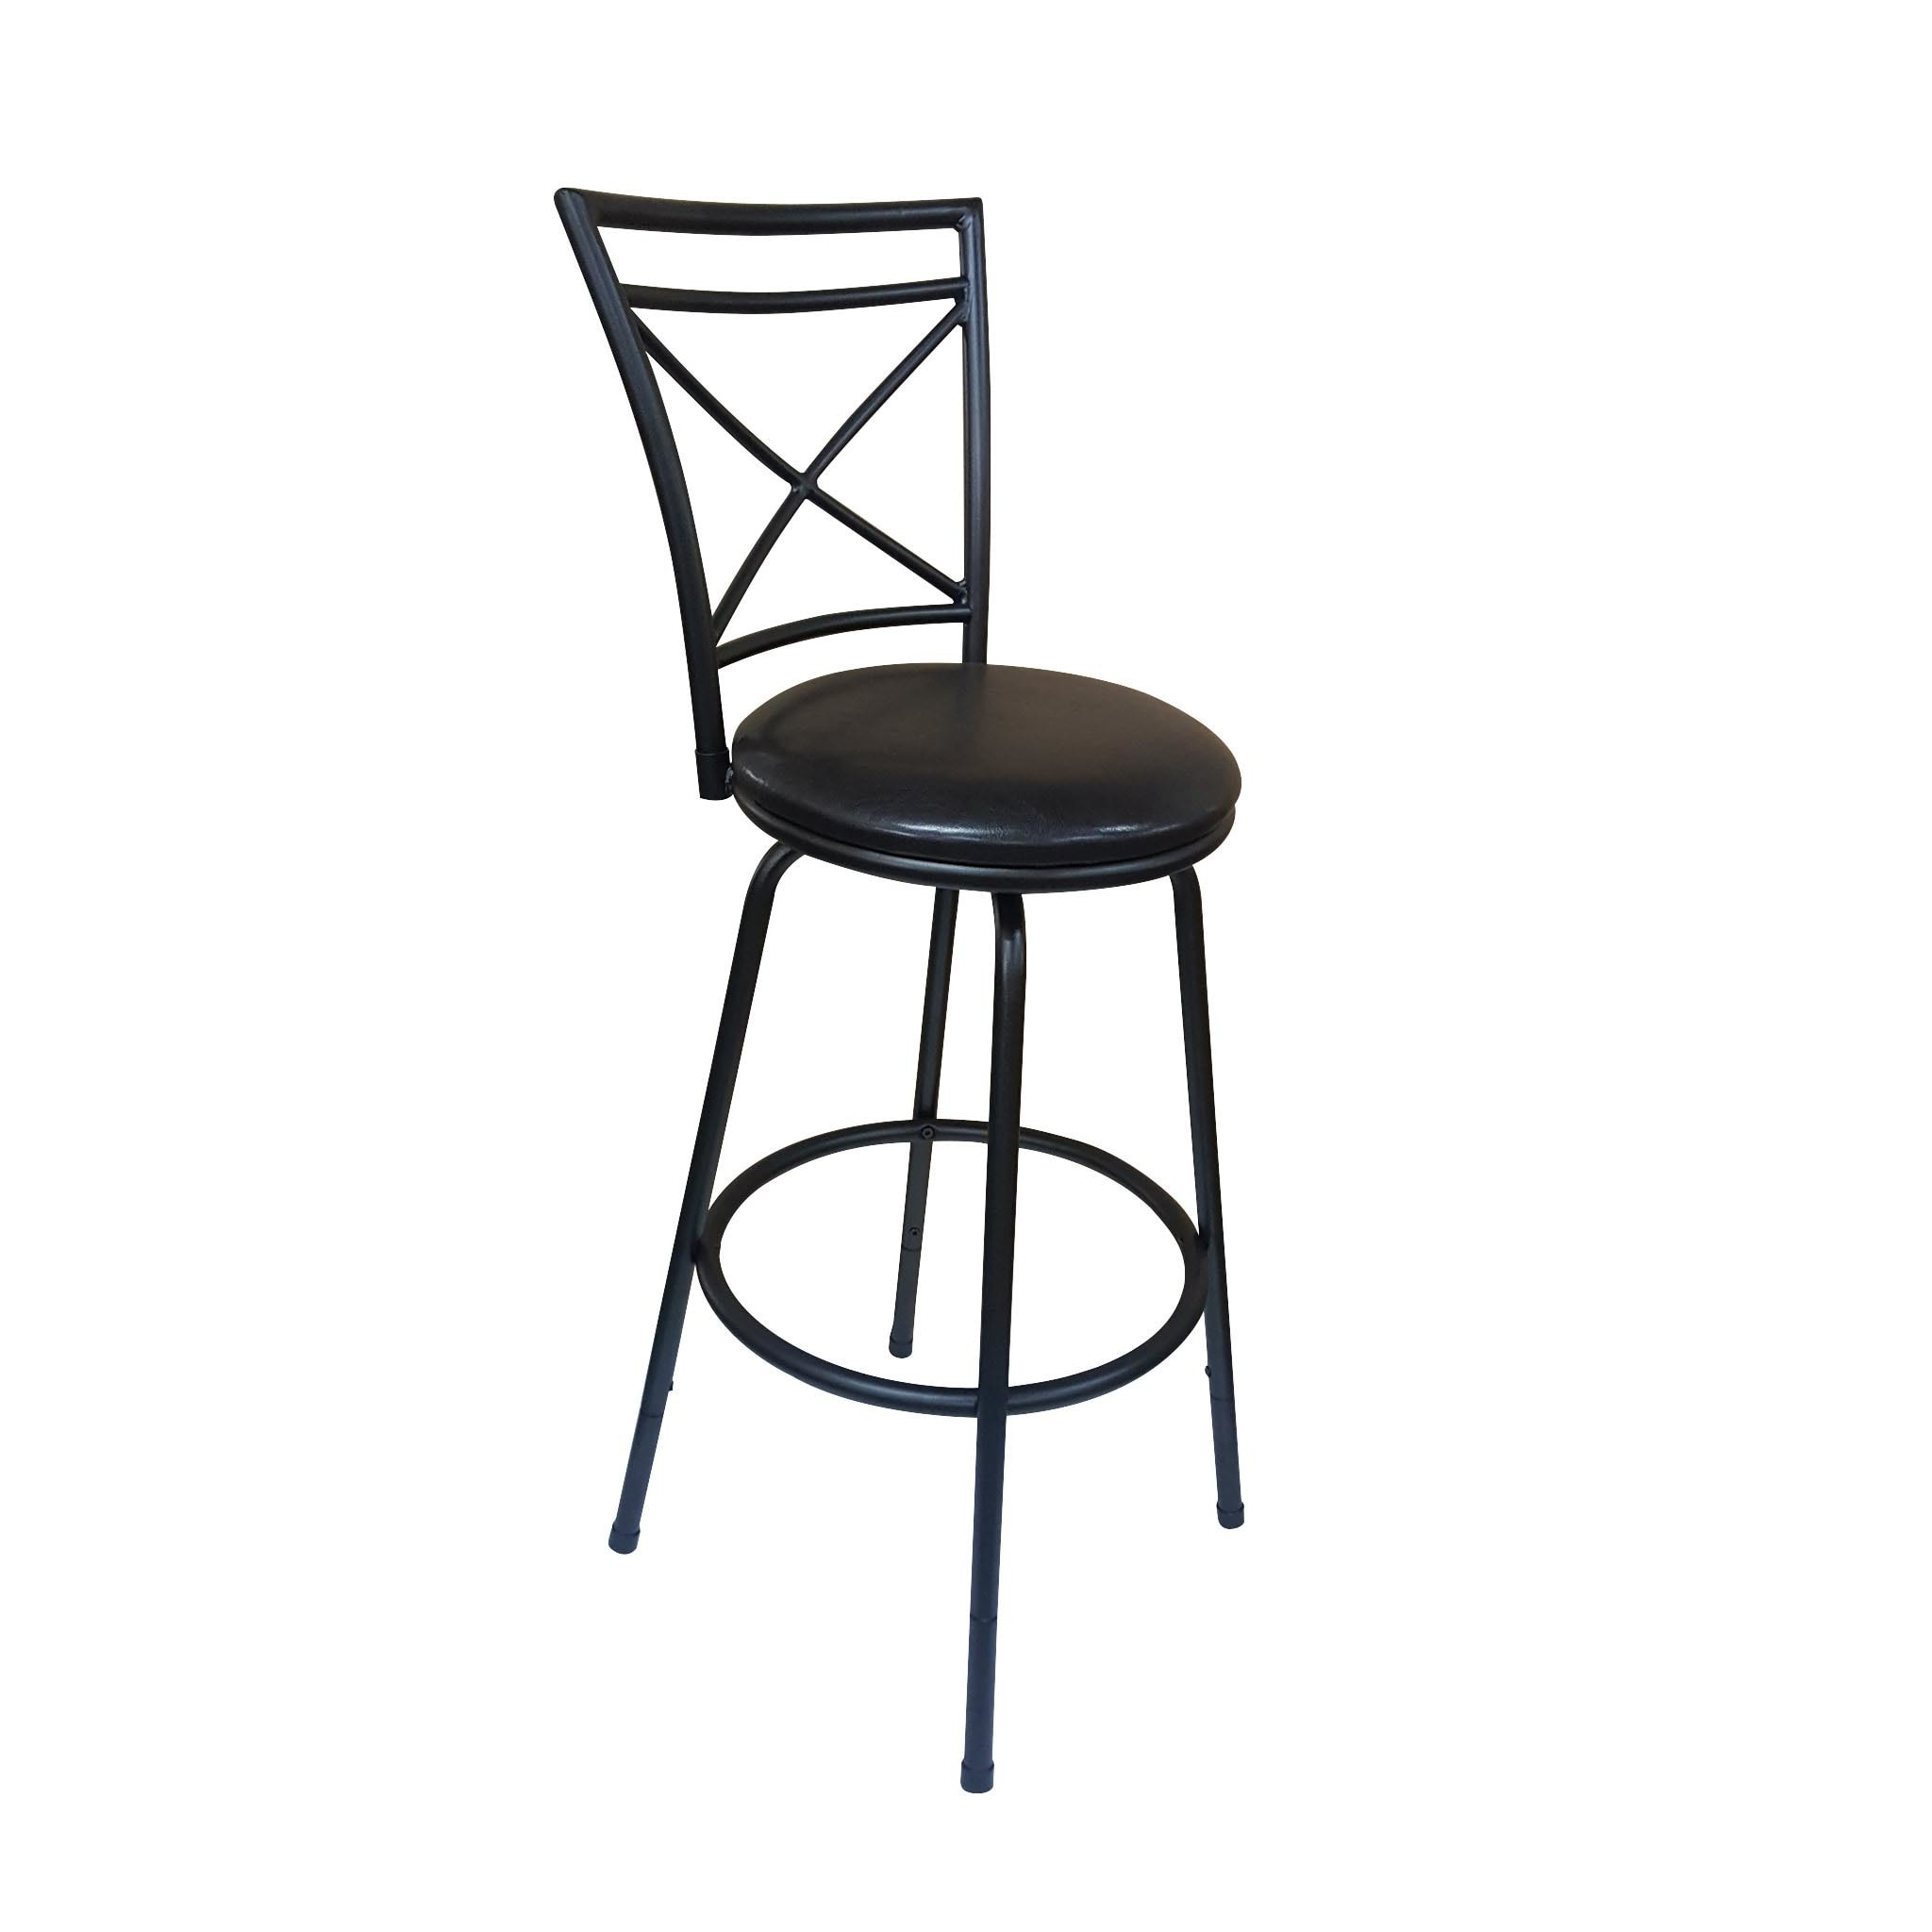 Porch & Den Botanical Heights Lafayette Black Metal and Faux Leather Adjustable Bar Stool - Thumbnail 0